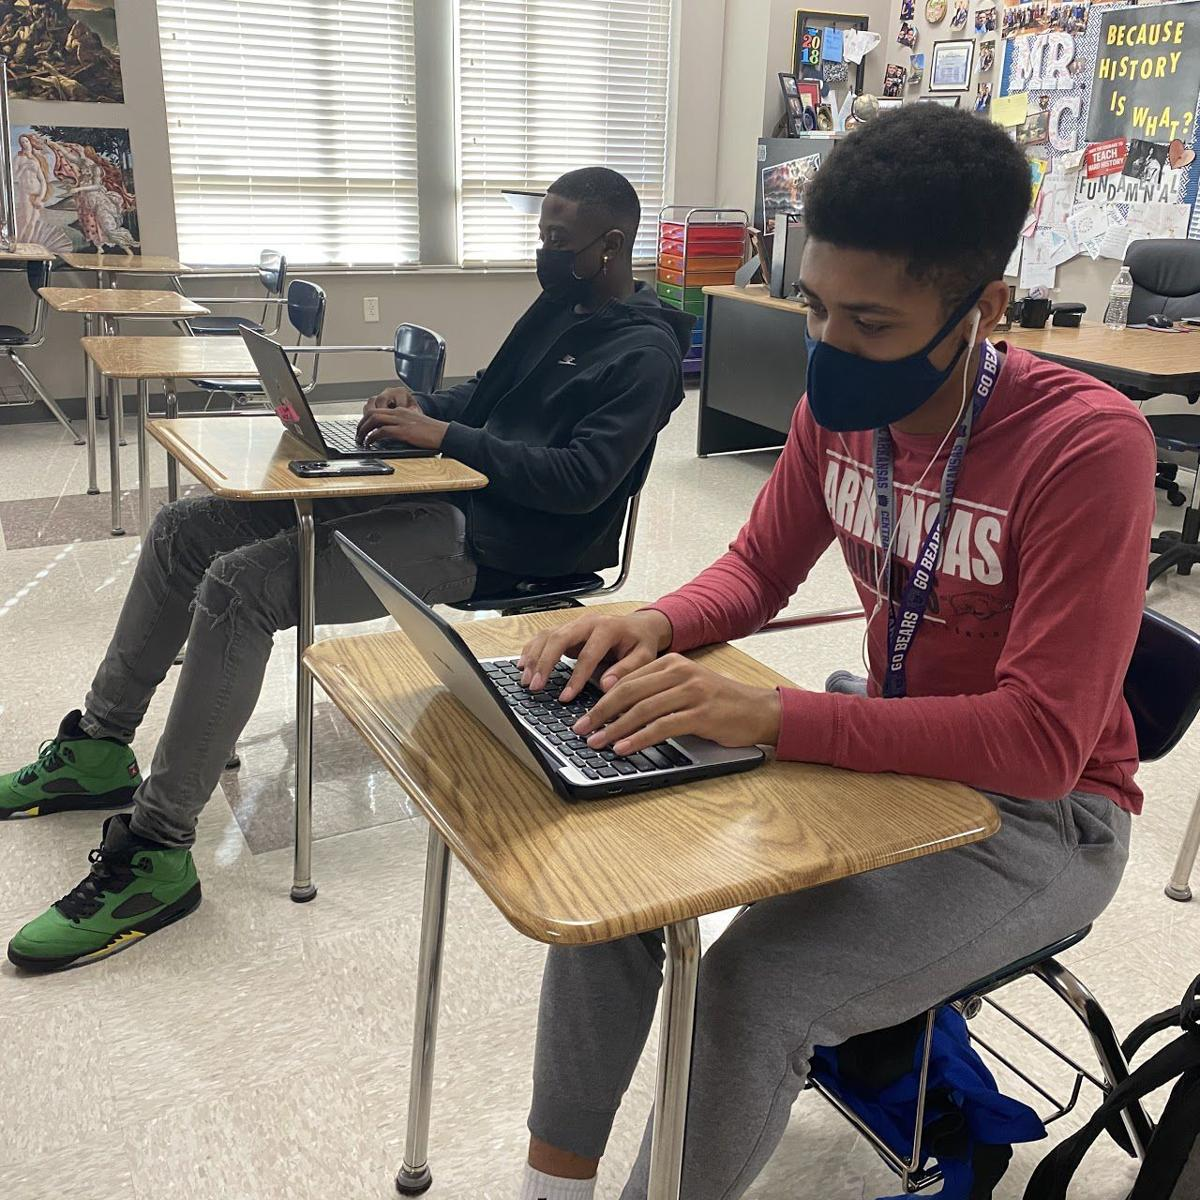 Conway High School students launch virtual Black History Museum 1